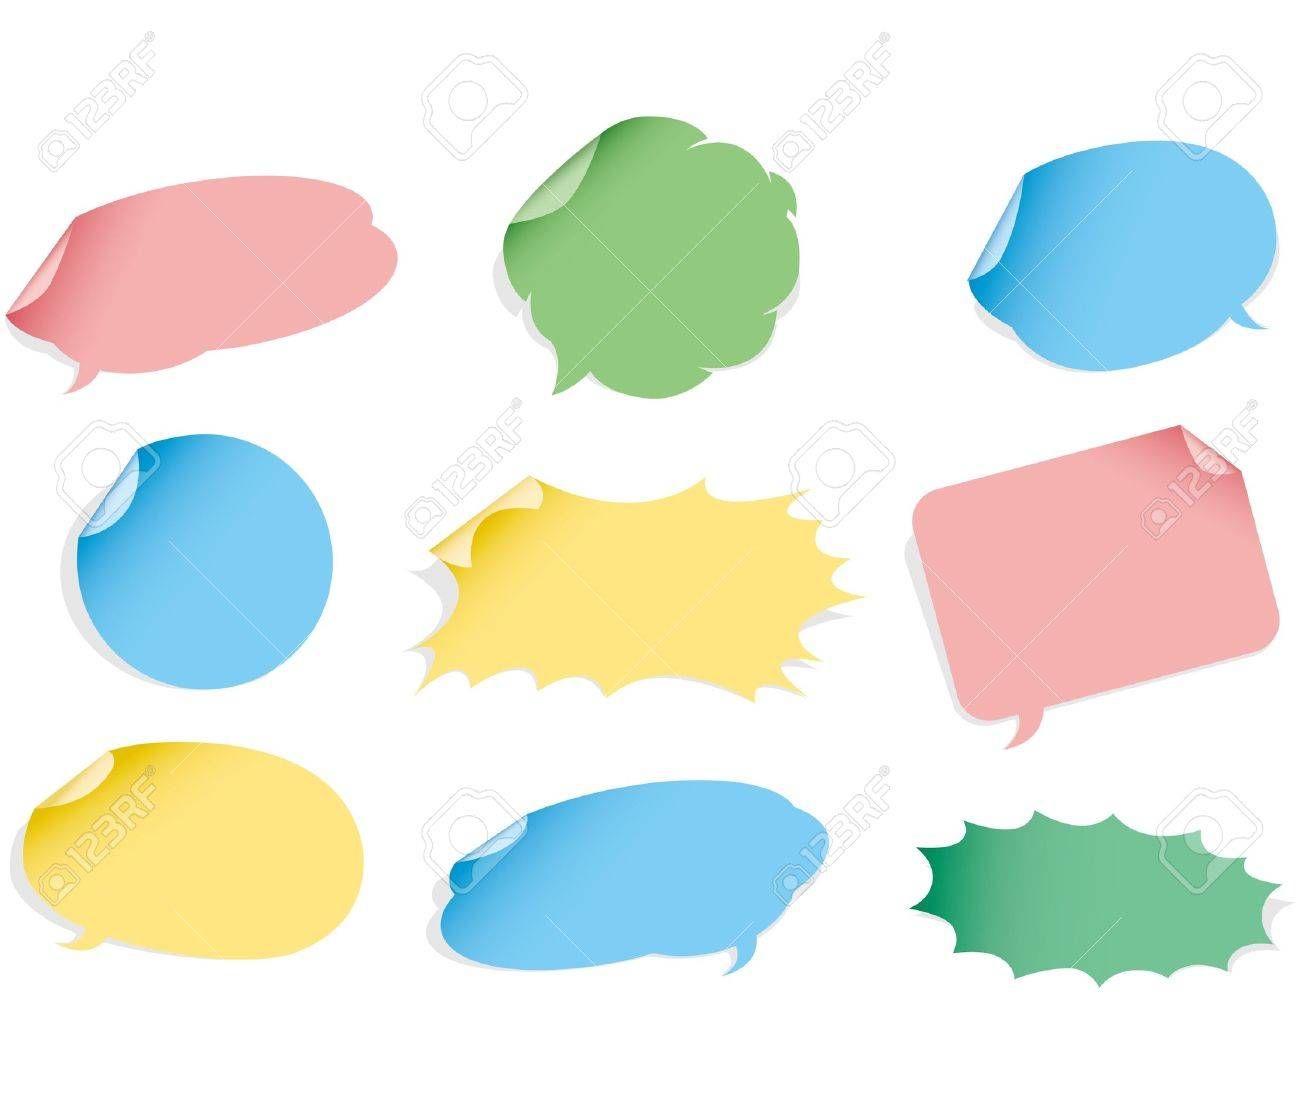 Vector speech bubble. Sticker set. Stock Vector - 12483228